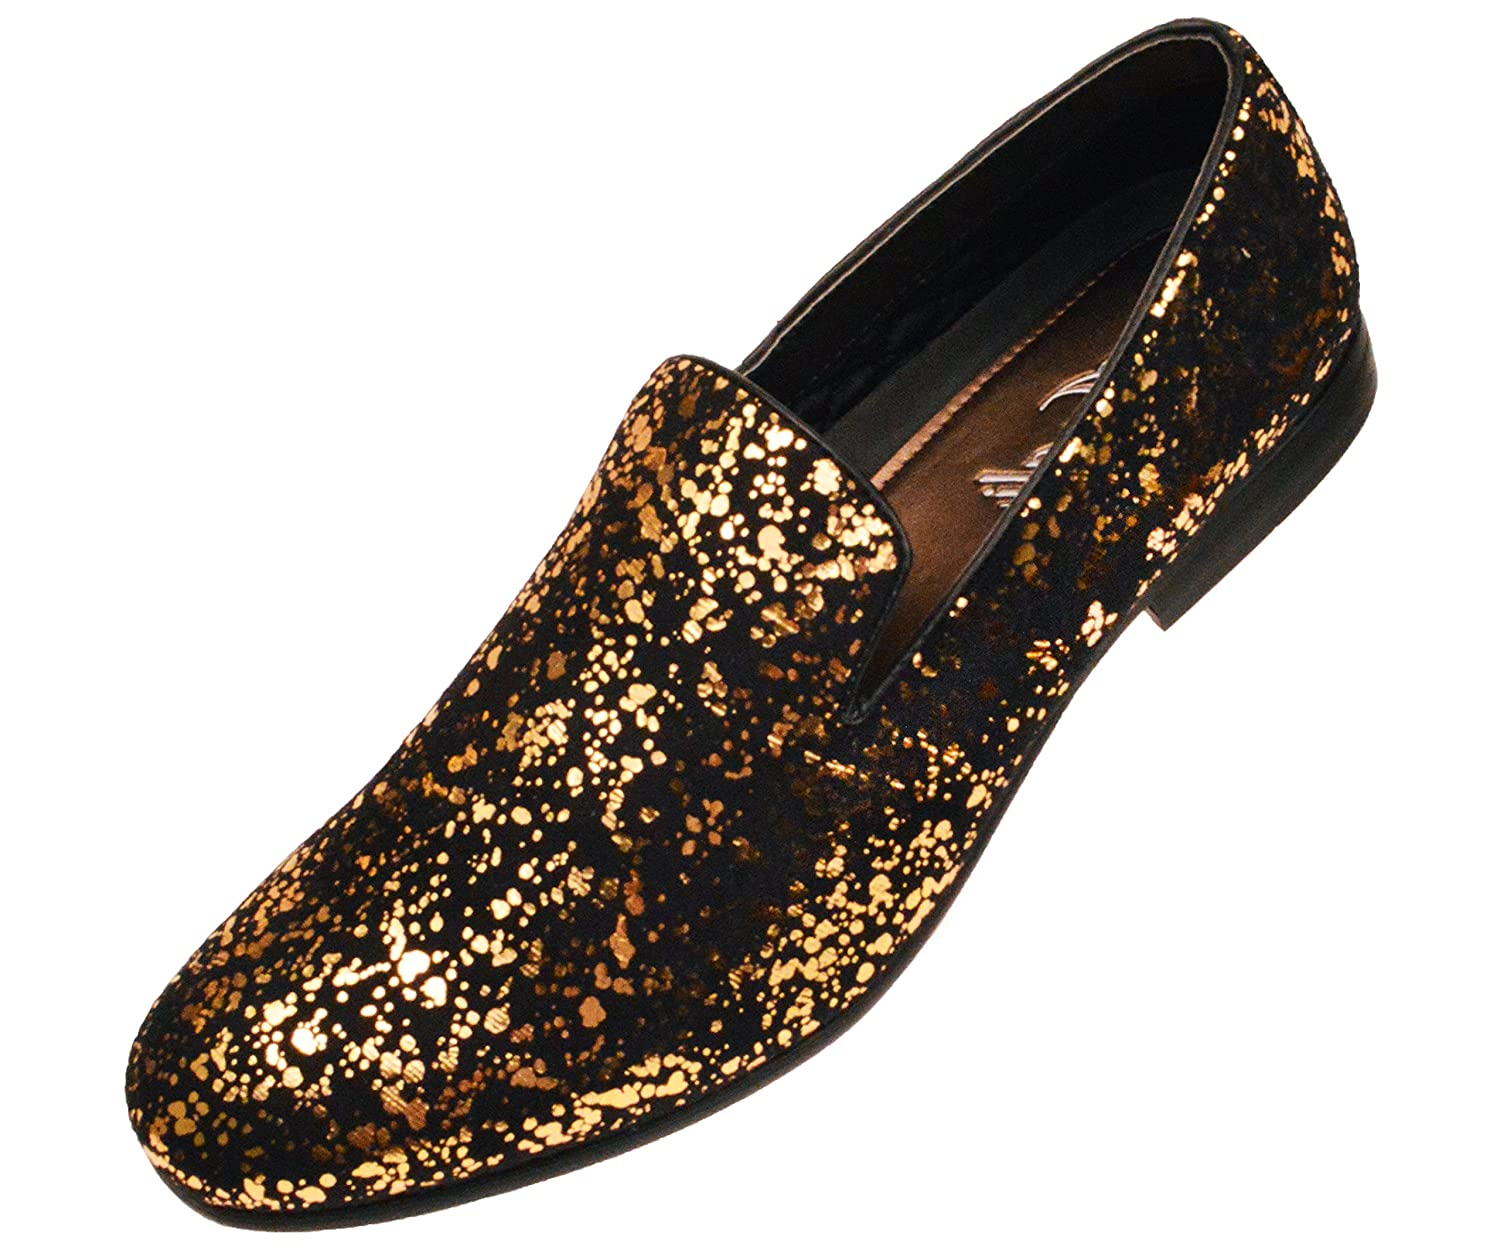 9a353f08df74 Amazon.com   Amali Mens Smoking Slipper Dress Shoes Metallic and Paisly  Velvet, MorrisF-035-Size-15   Loafers & Slip-Ons